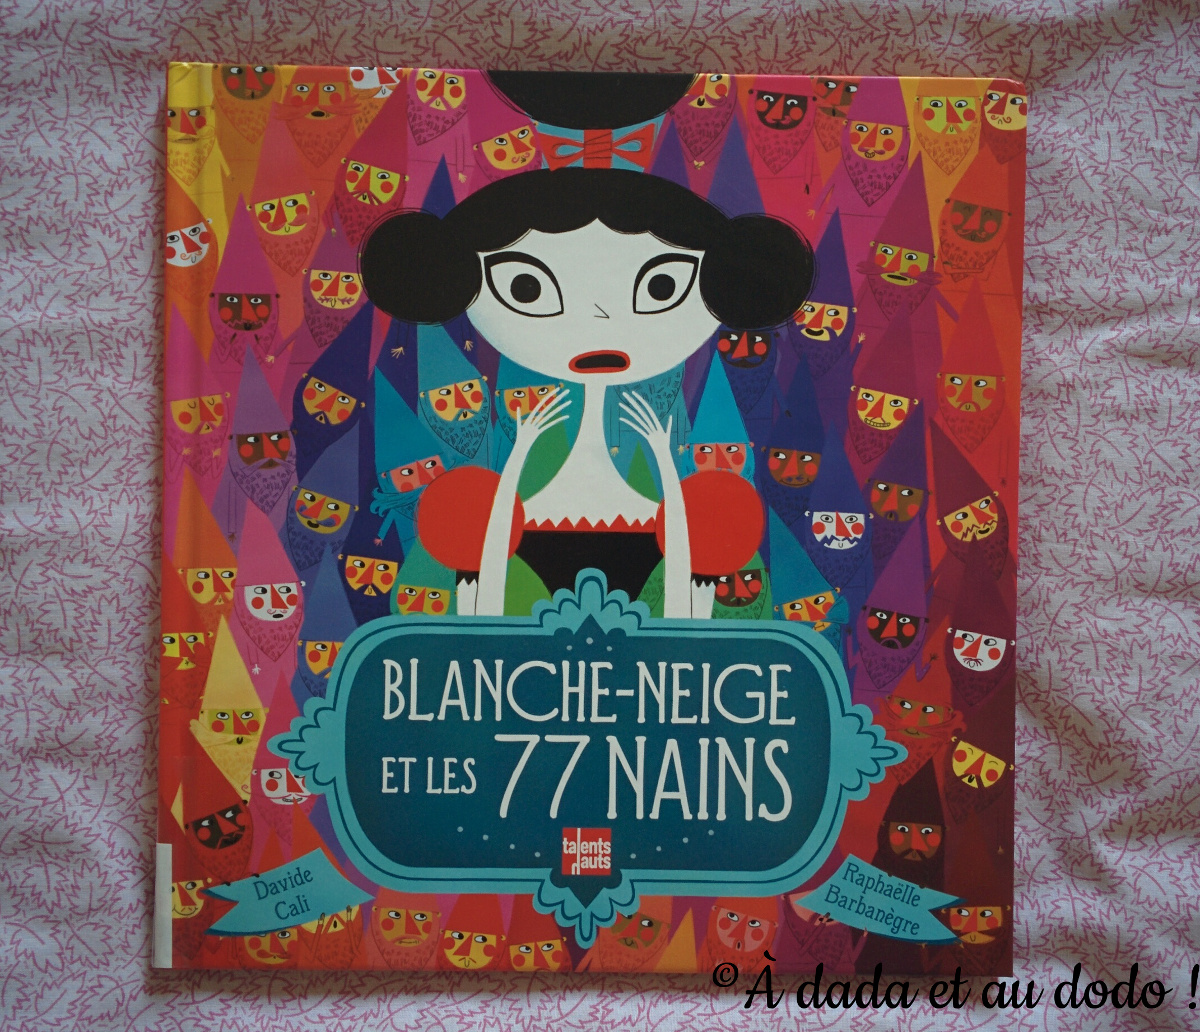 blanche-neige-77-nains